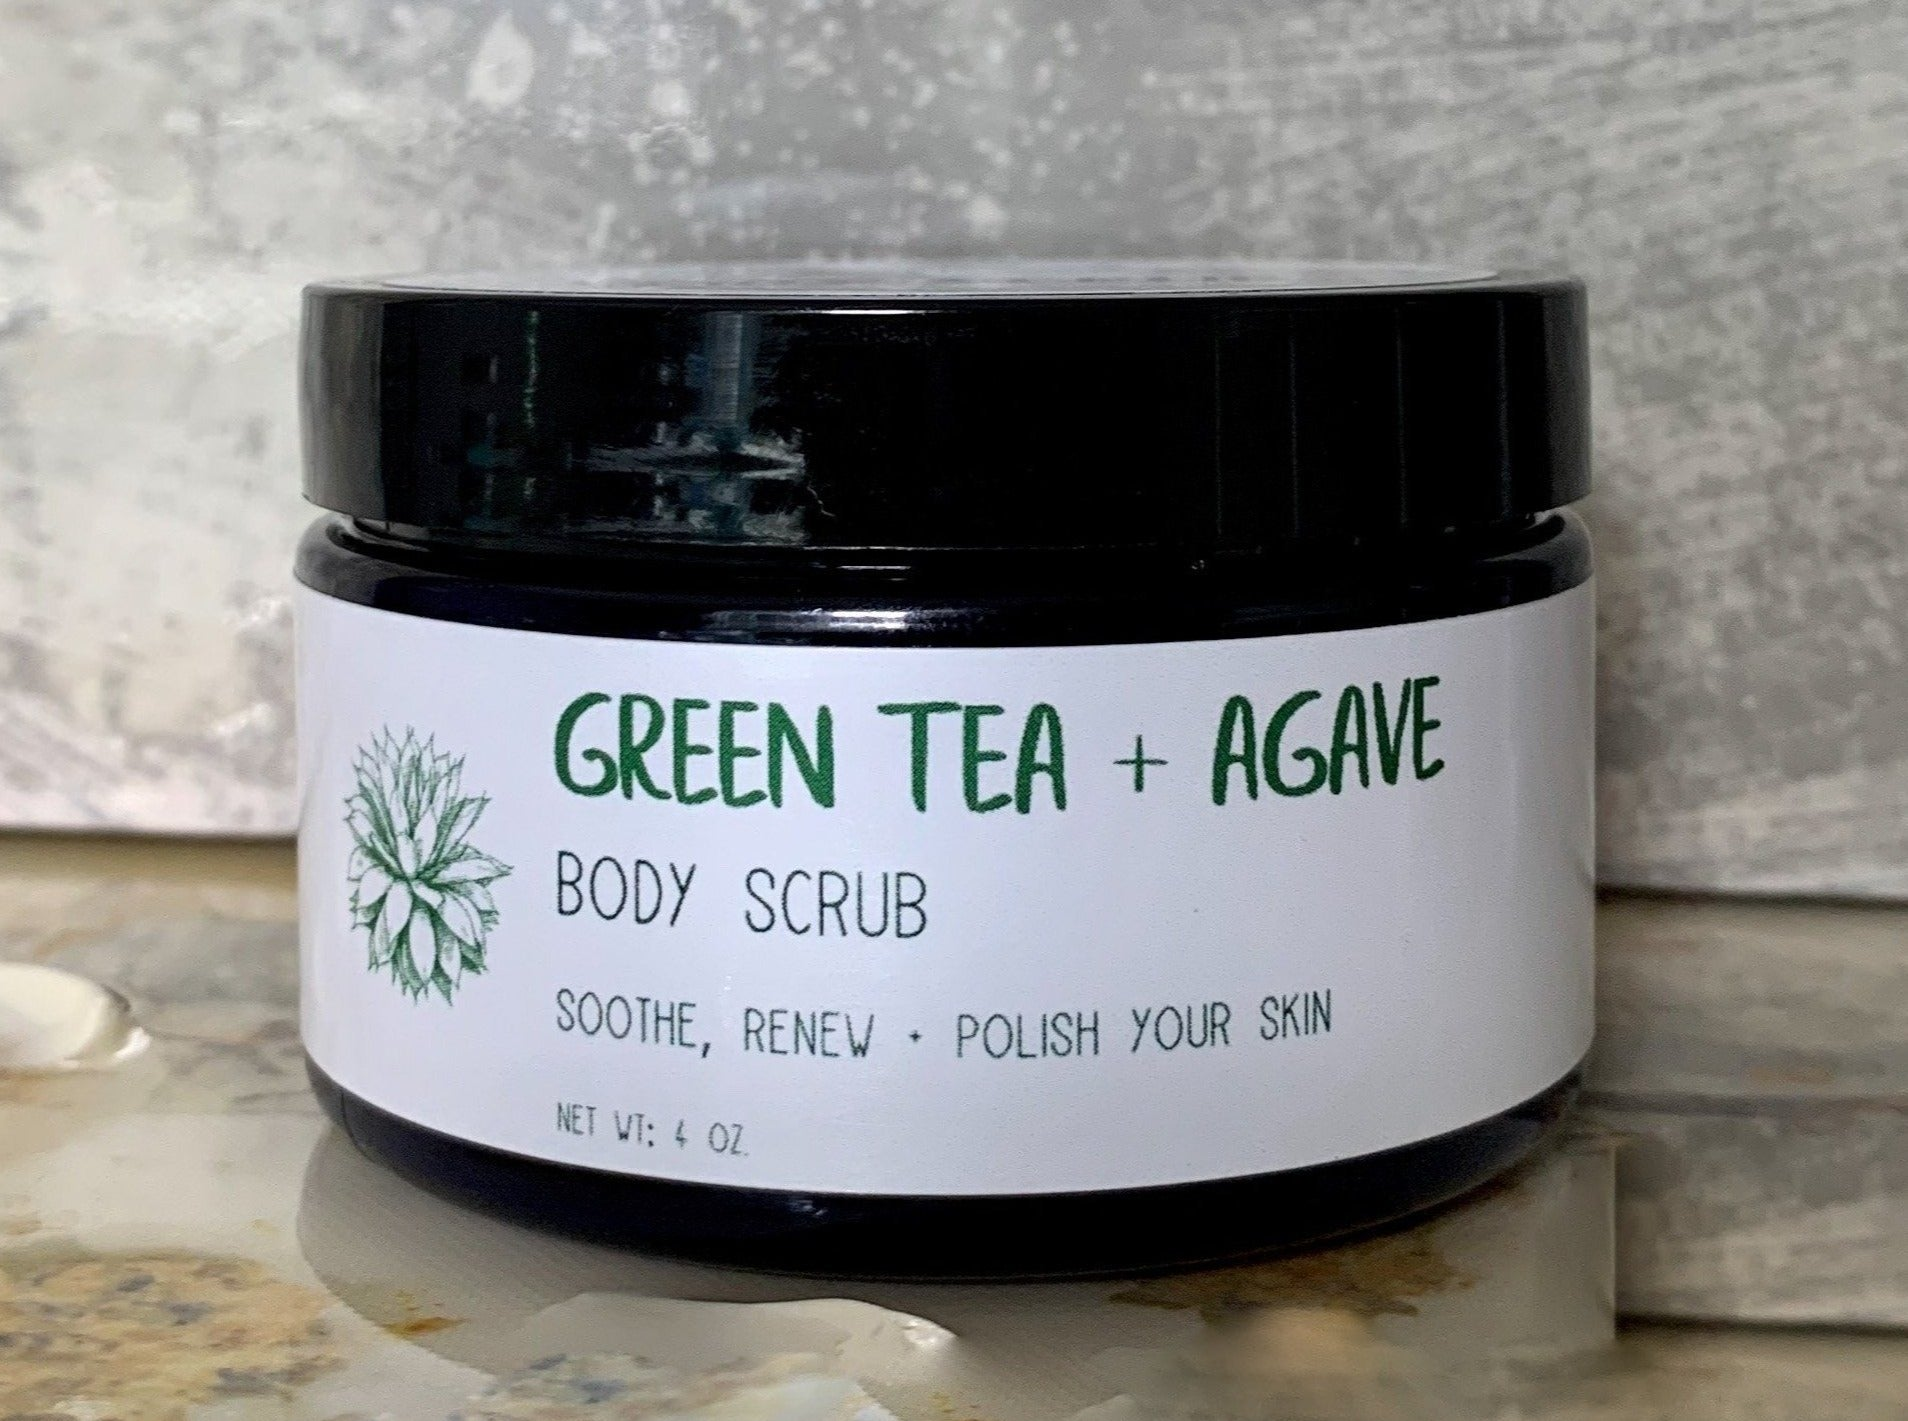 Green Tea + Agave Body Scrub